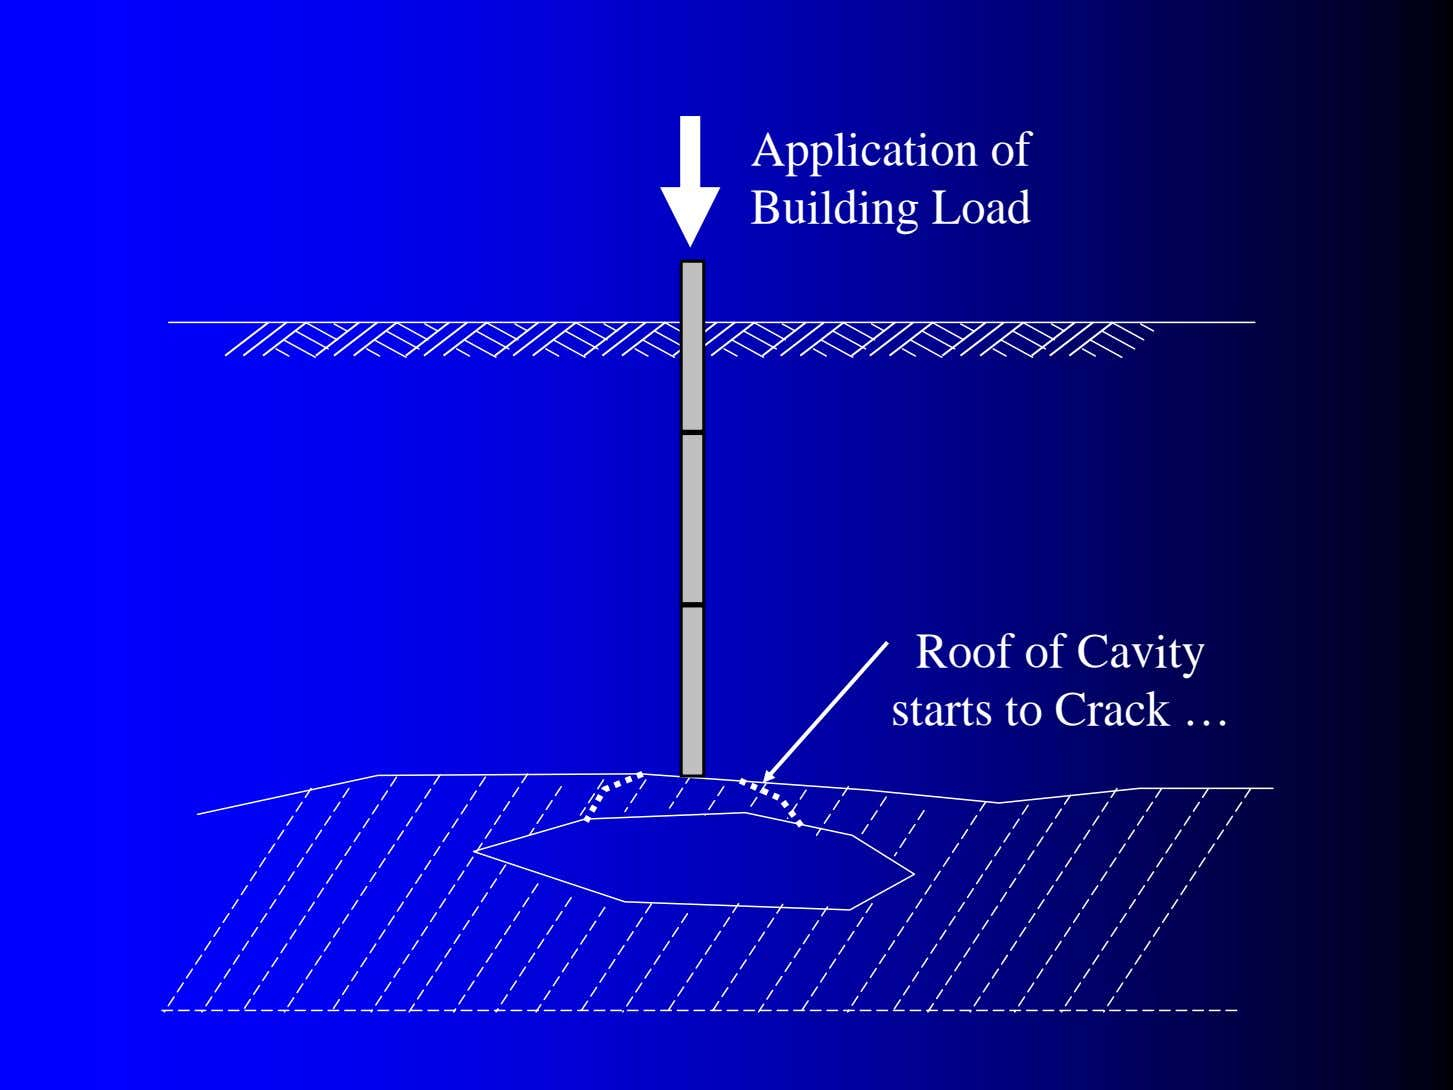 Application of Building Load Roof of Cavity starts to Crack …